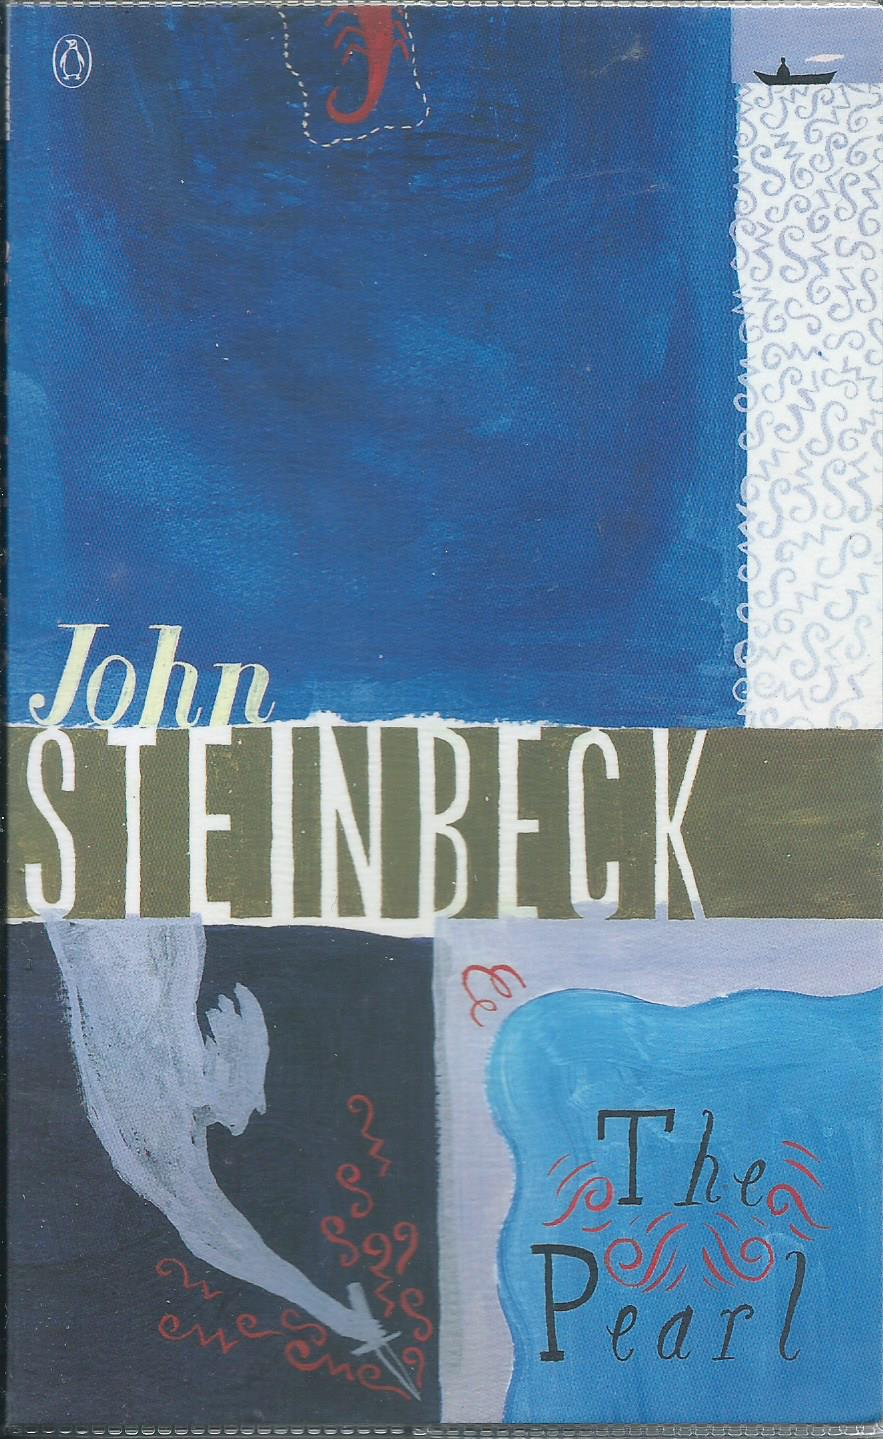 an analysis of evil in the pearl by john steinbeck The pearl by john steinbeck is a novel about an impoverished young diver, kino, who finds a pearl of extraordinary beauty and value hardly believing his luck, kino believes the pearl will bring his family fortune and fulfill his dreams of a better future but as the old adage goes, be careful of.